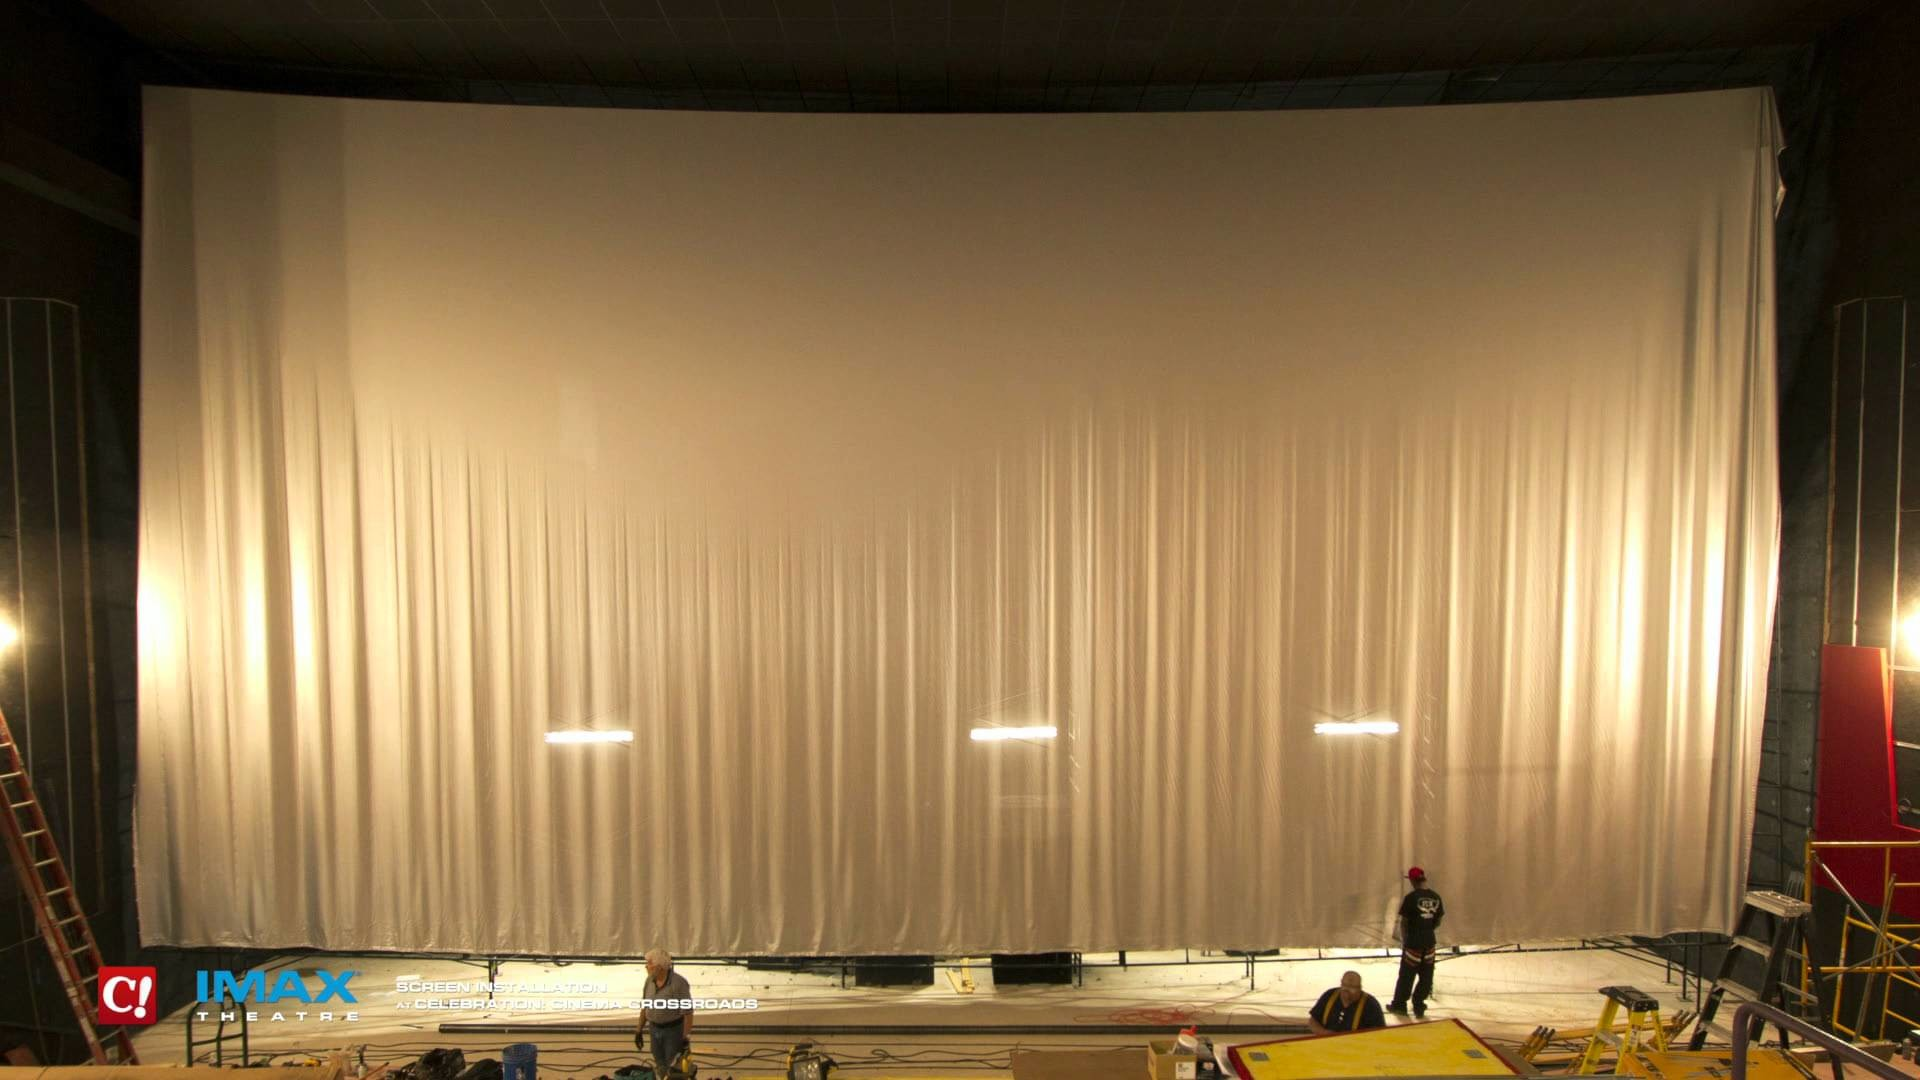 1920x1080 IMAX Screen Installation Timelapse at Celebration! Cinema Crossroads -  YouTube